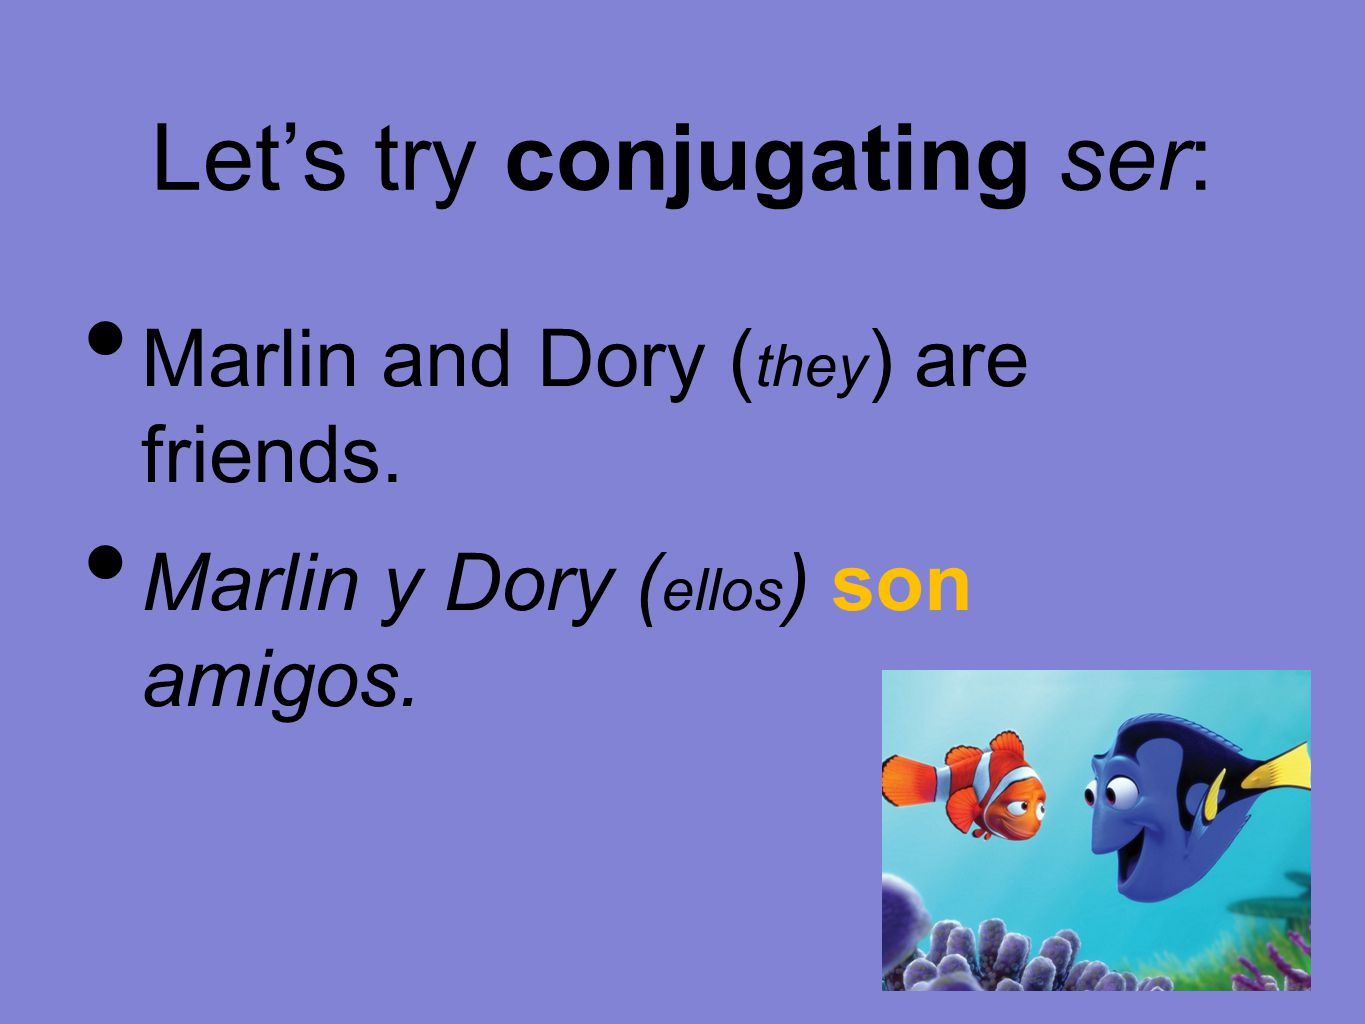 Let's try conjugating ser: Marlin and Dory ( they ) are friends. Marlin y Dory ( ellos ) son amigos.